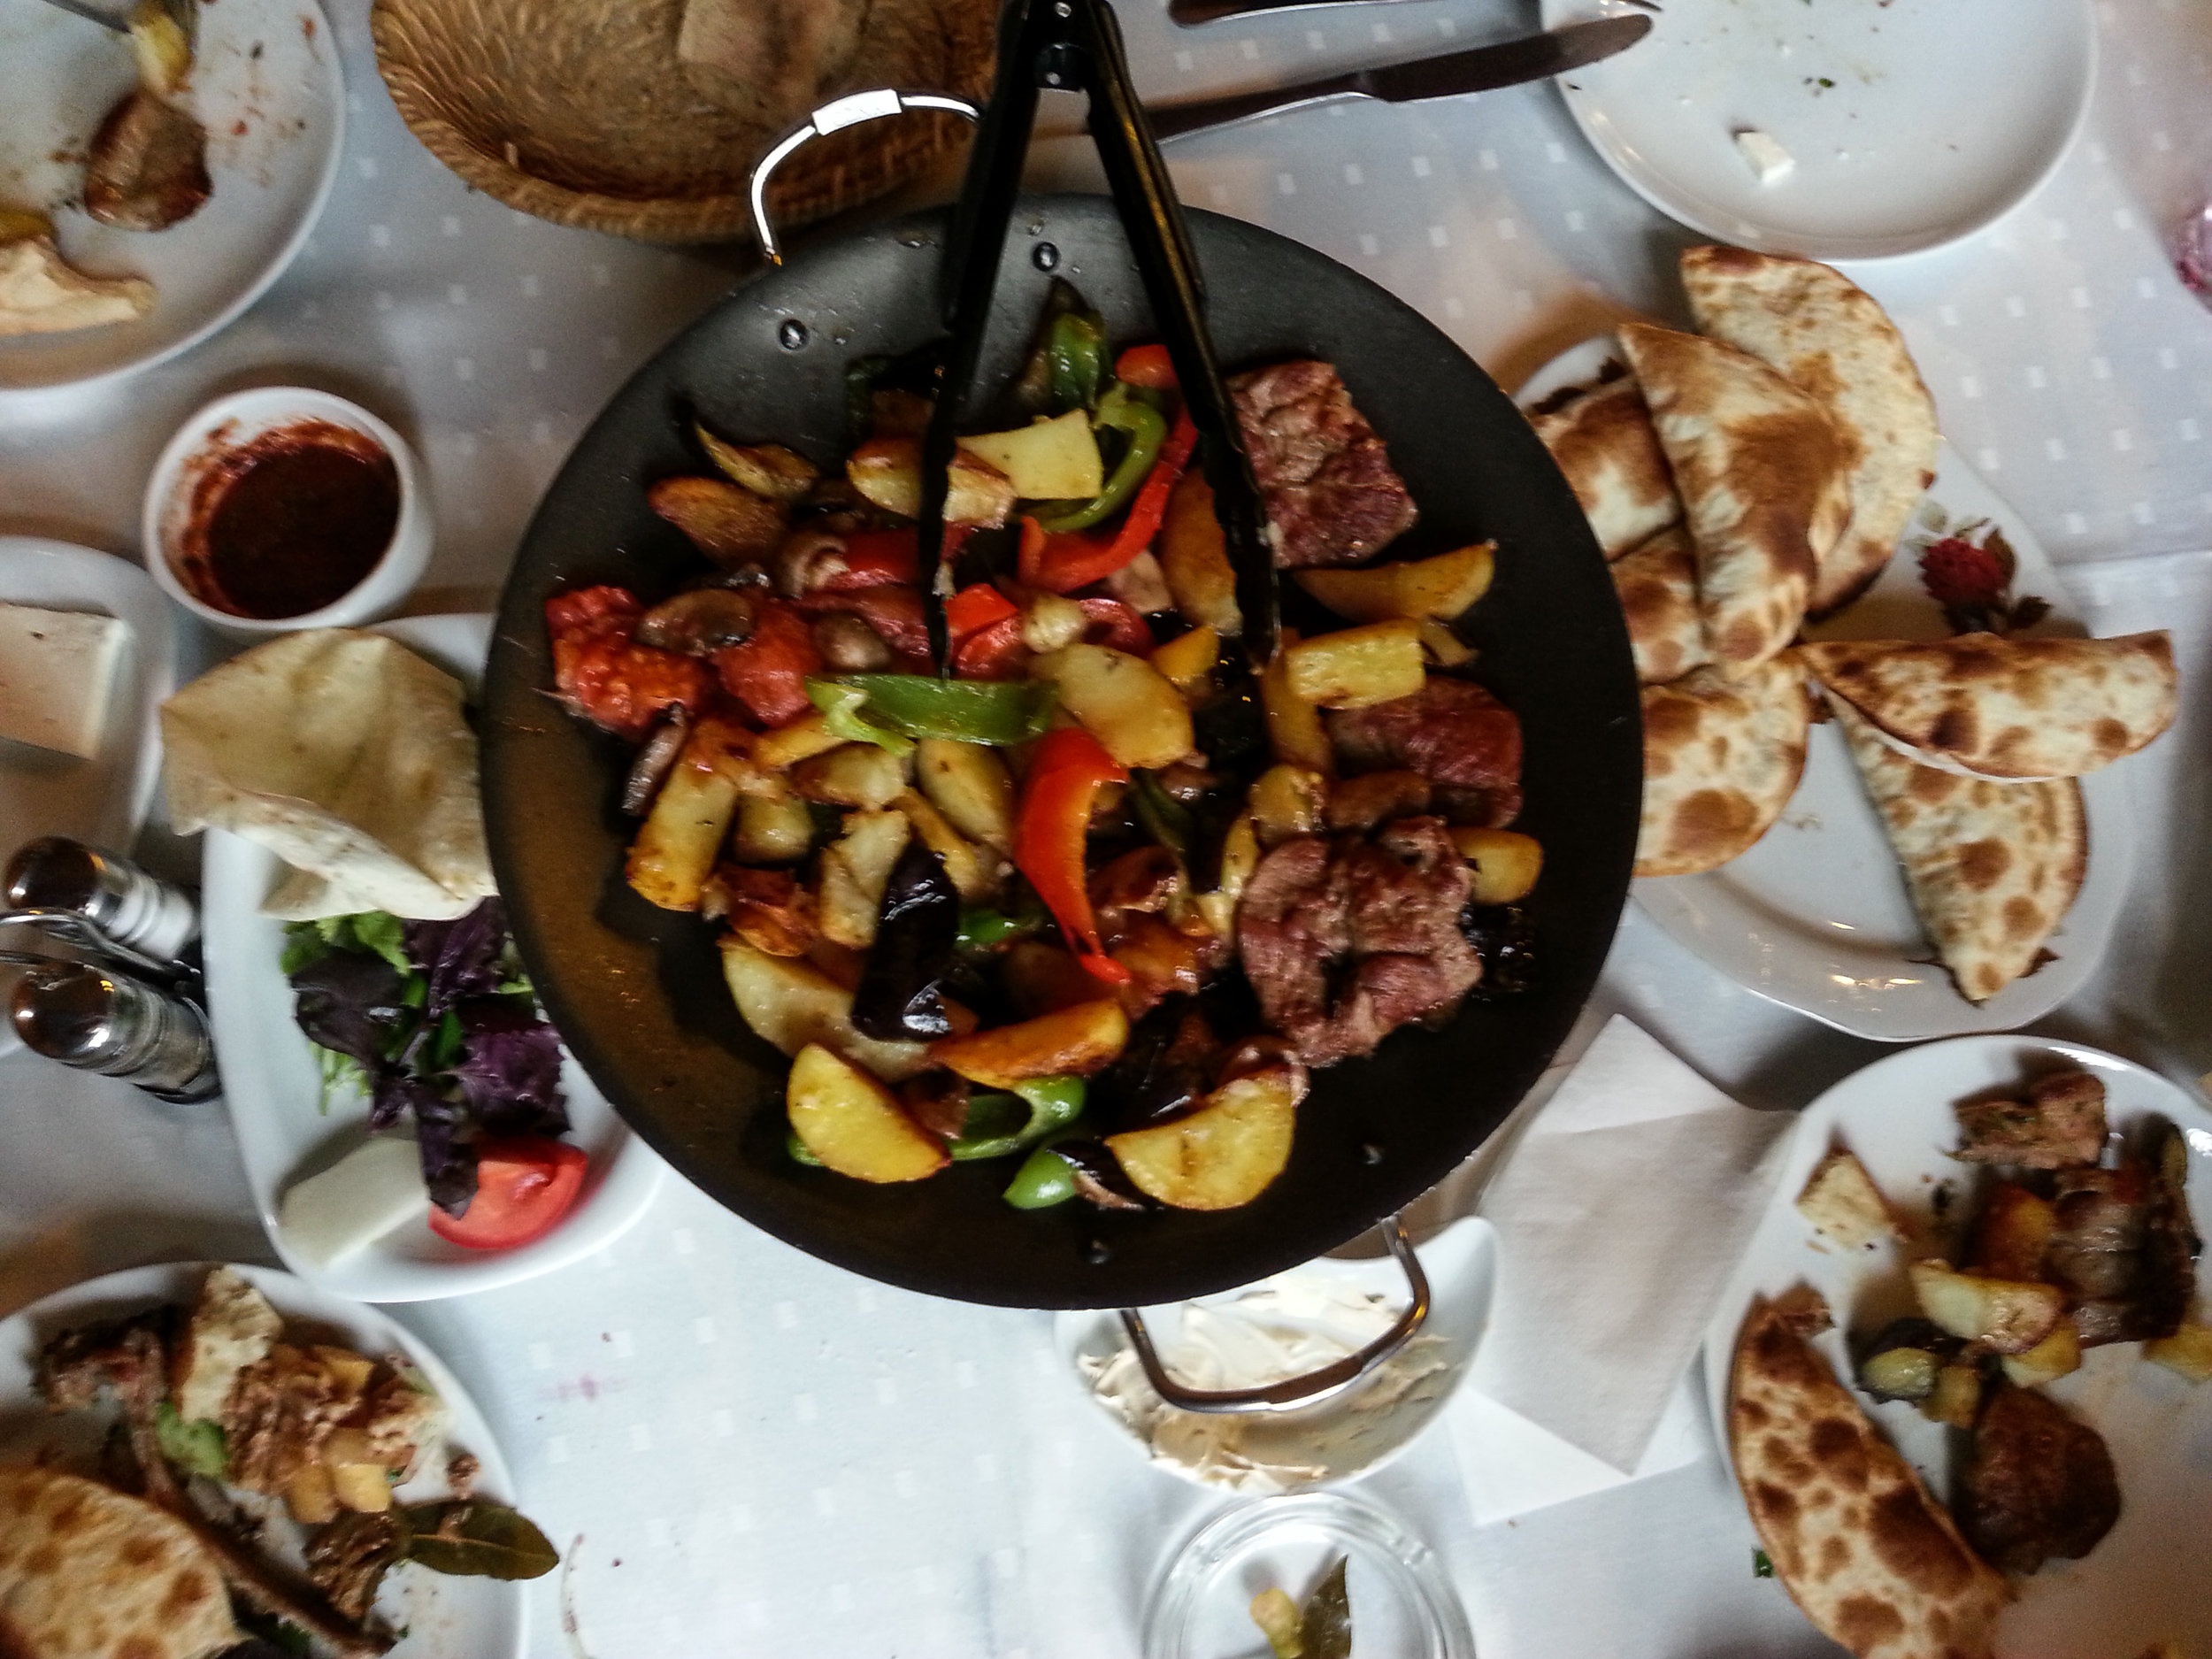 Meat fried with peppers and herbs and spices in a cast iron pan. On the side are some gutab (pastry filled with meat),